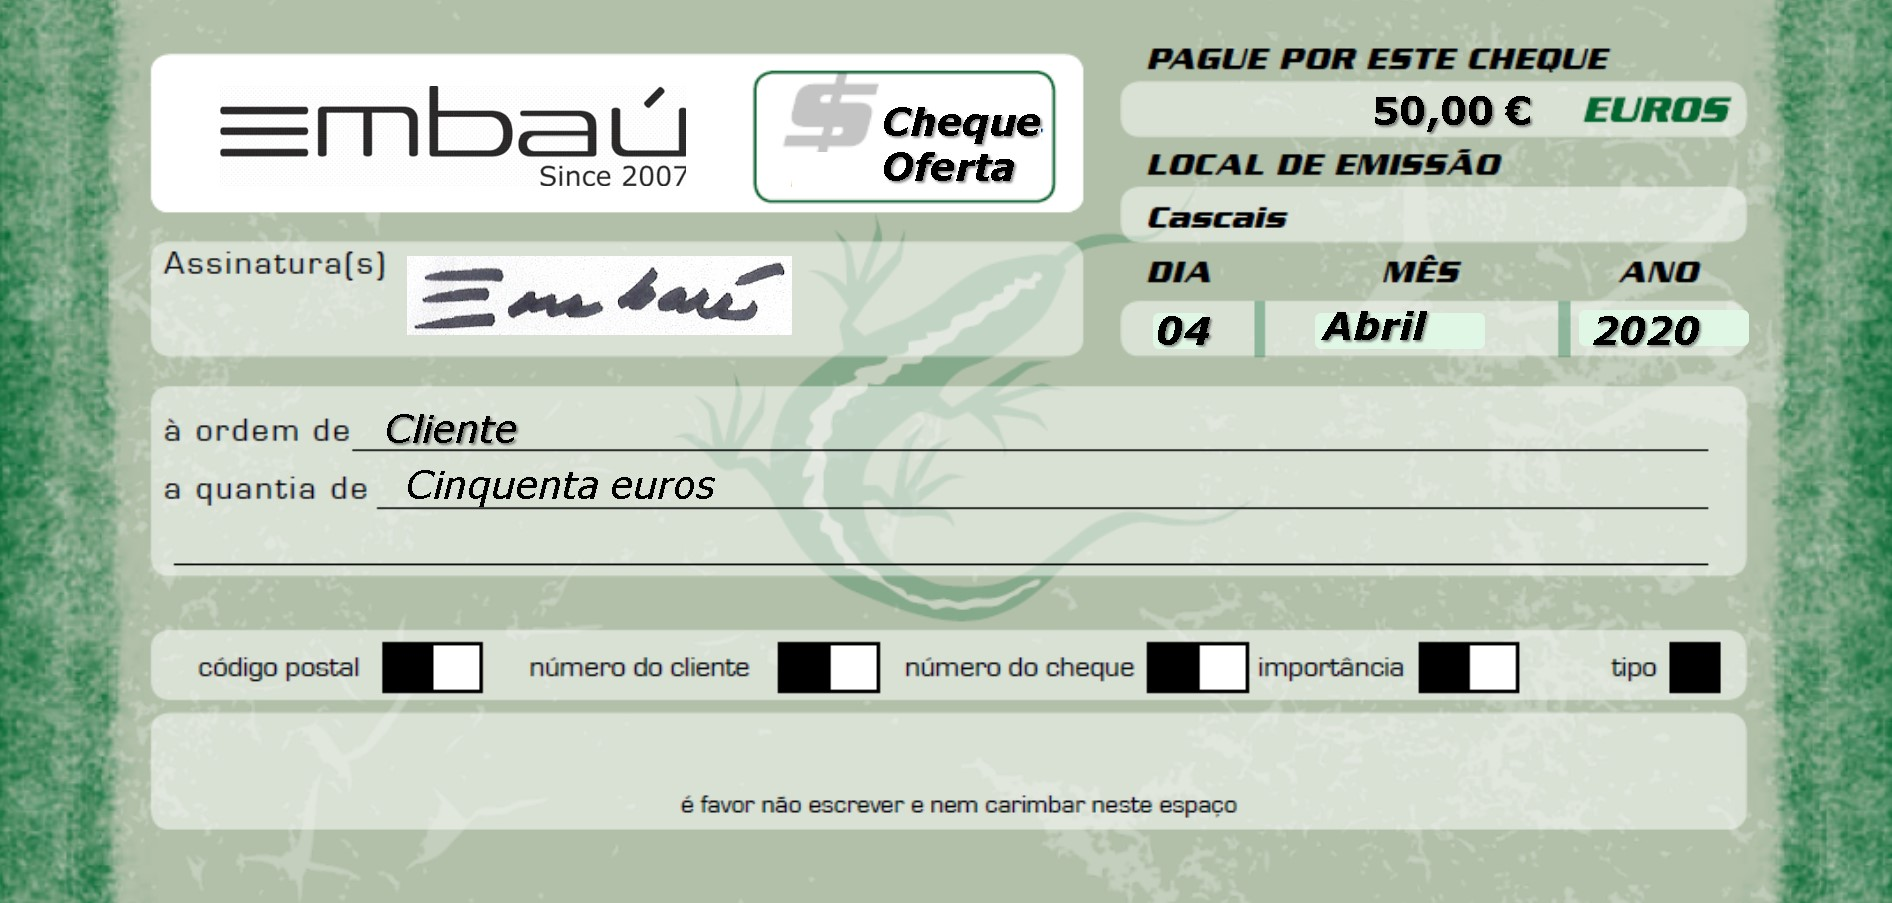 Cheque-Oferta Embaú 50